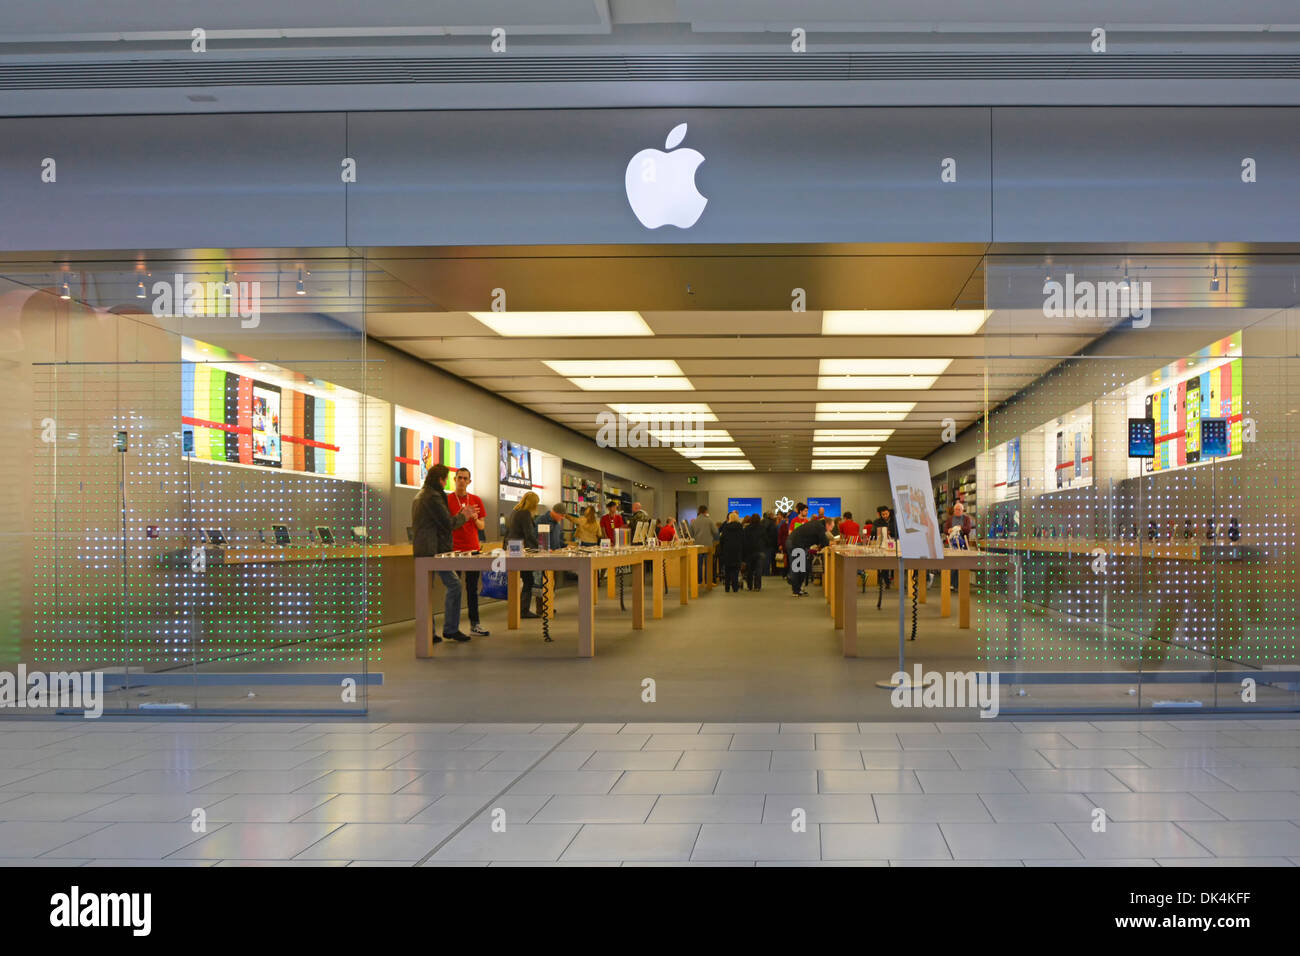 Apple Store Entrance Stock Photos & Apple Store Entrance Stock ...